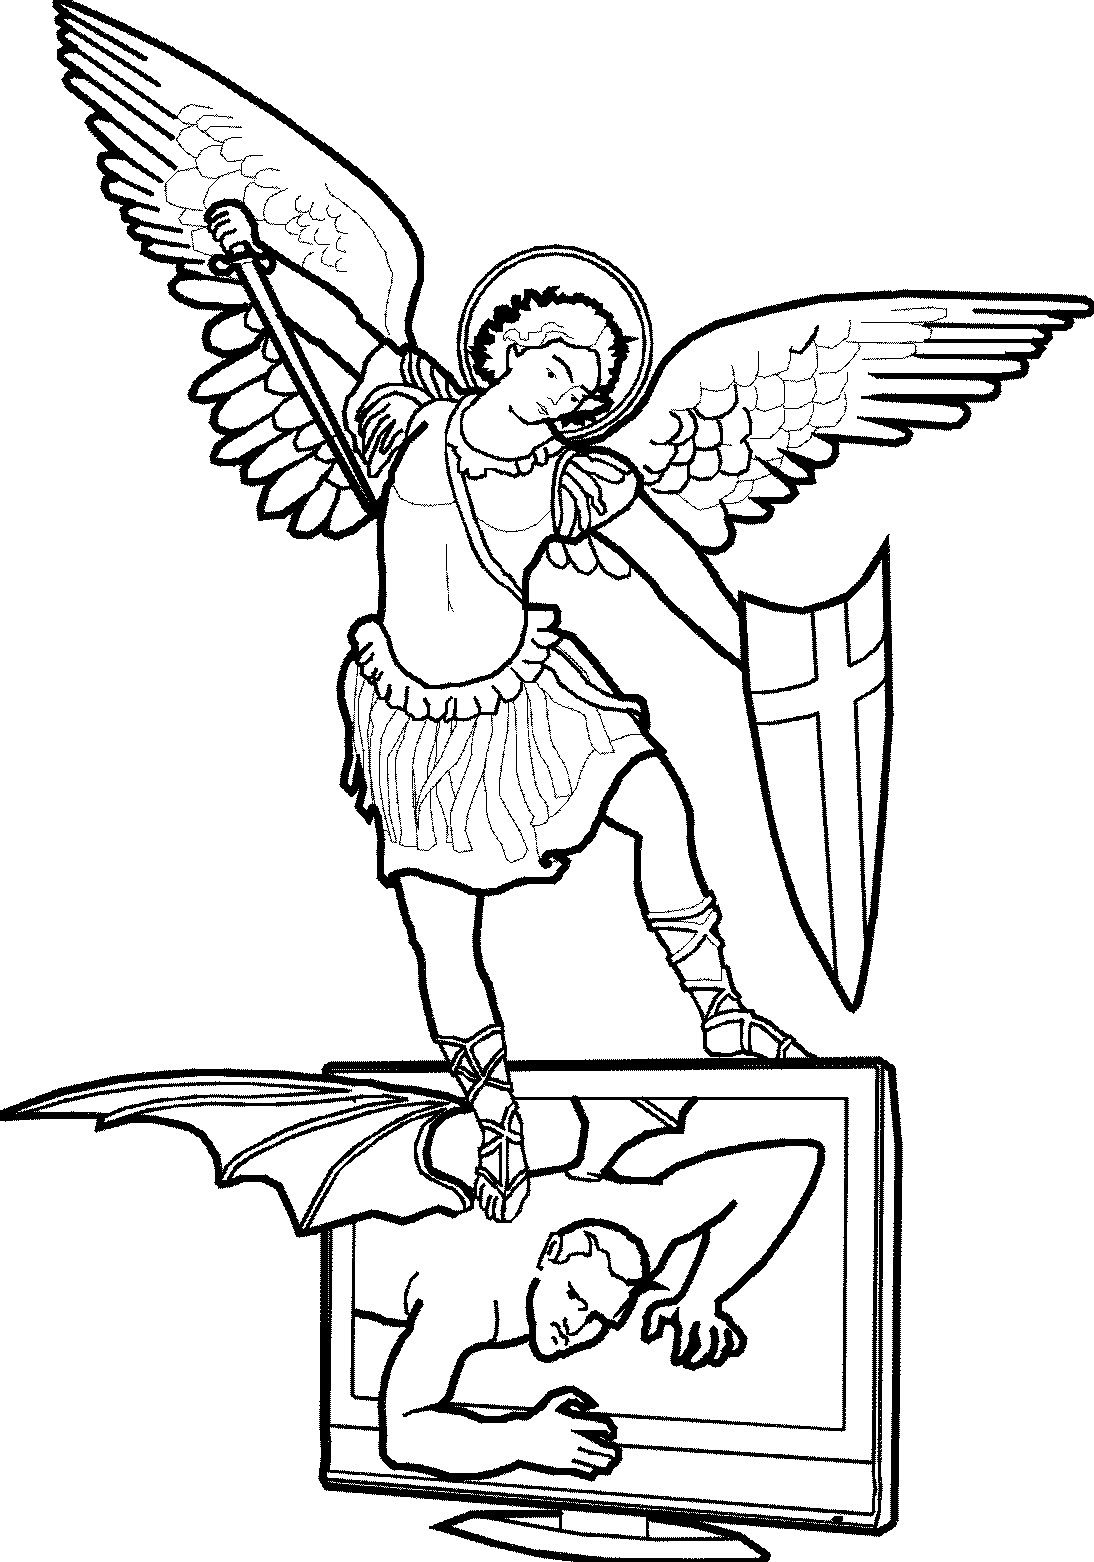 St michael clipart 20 free Cliparts | Download images on ...